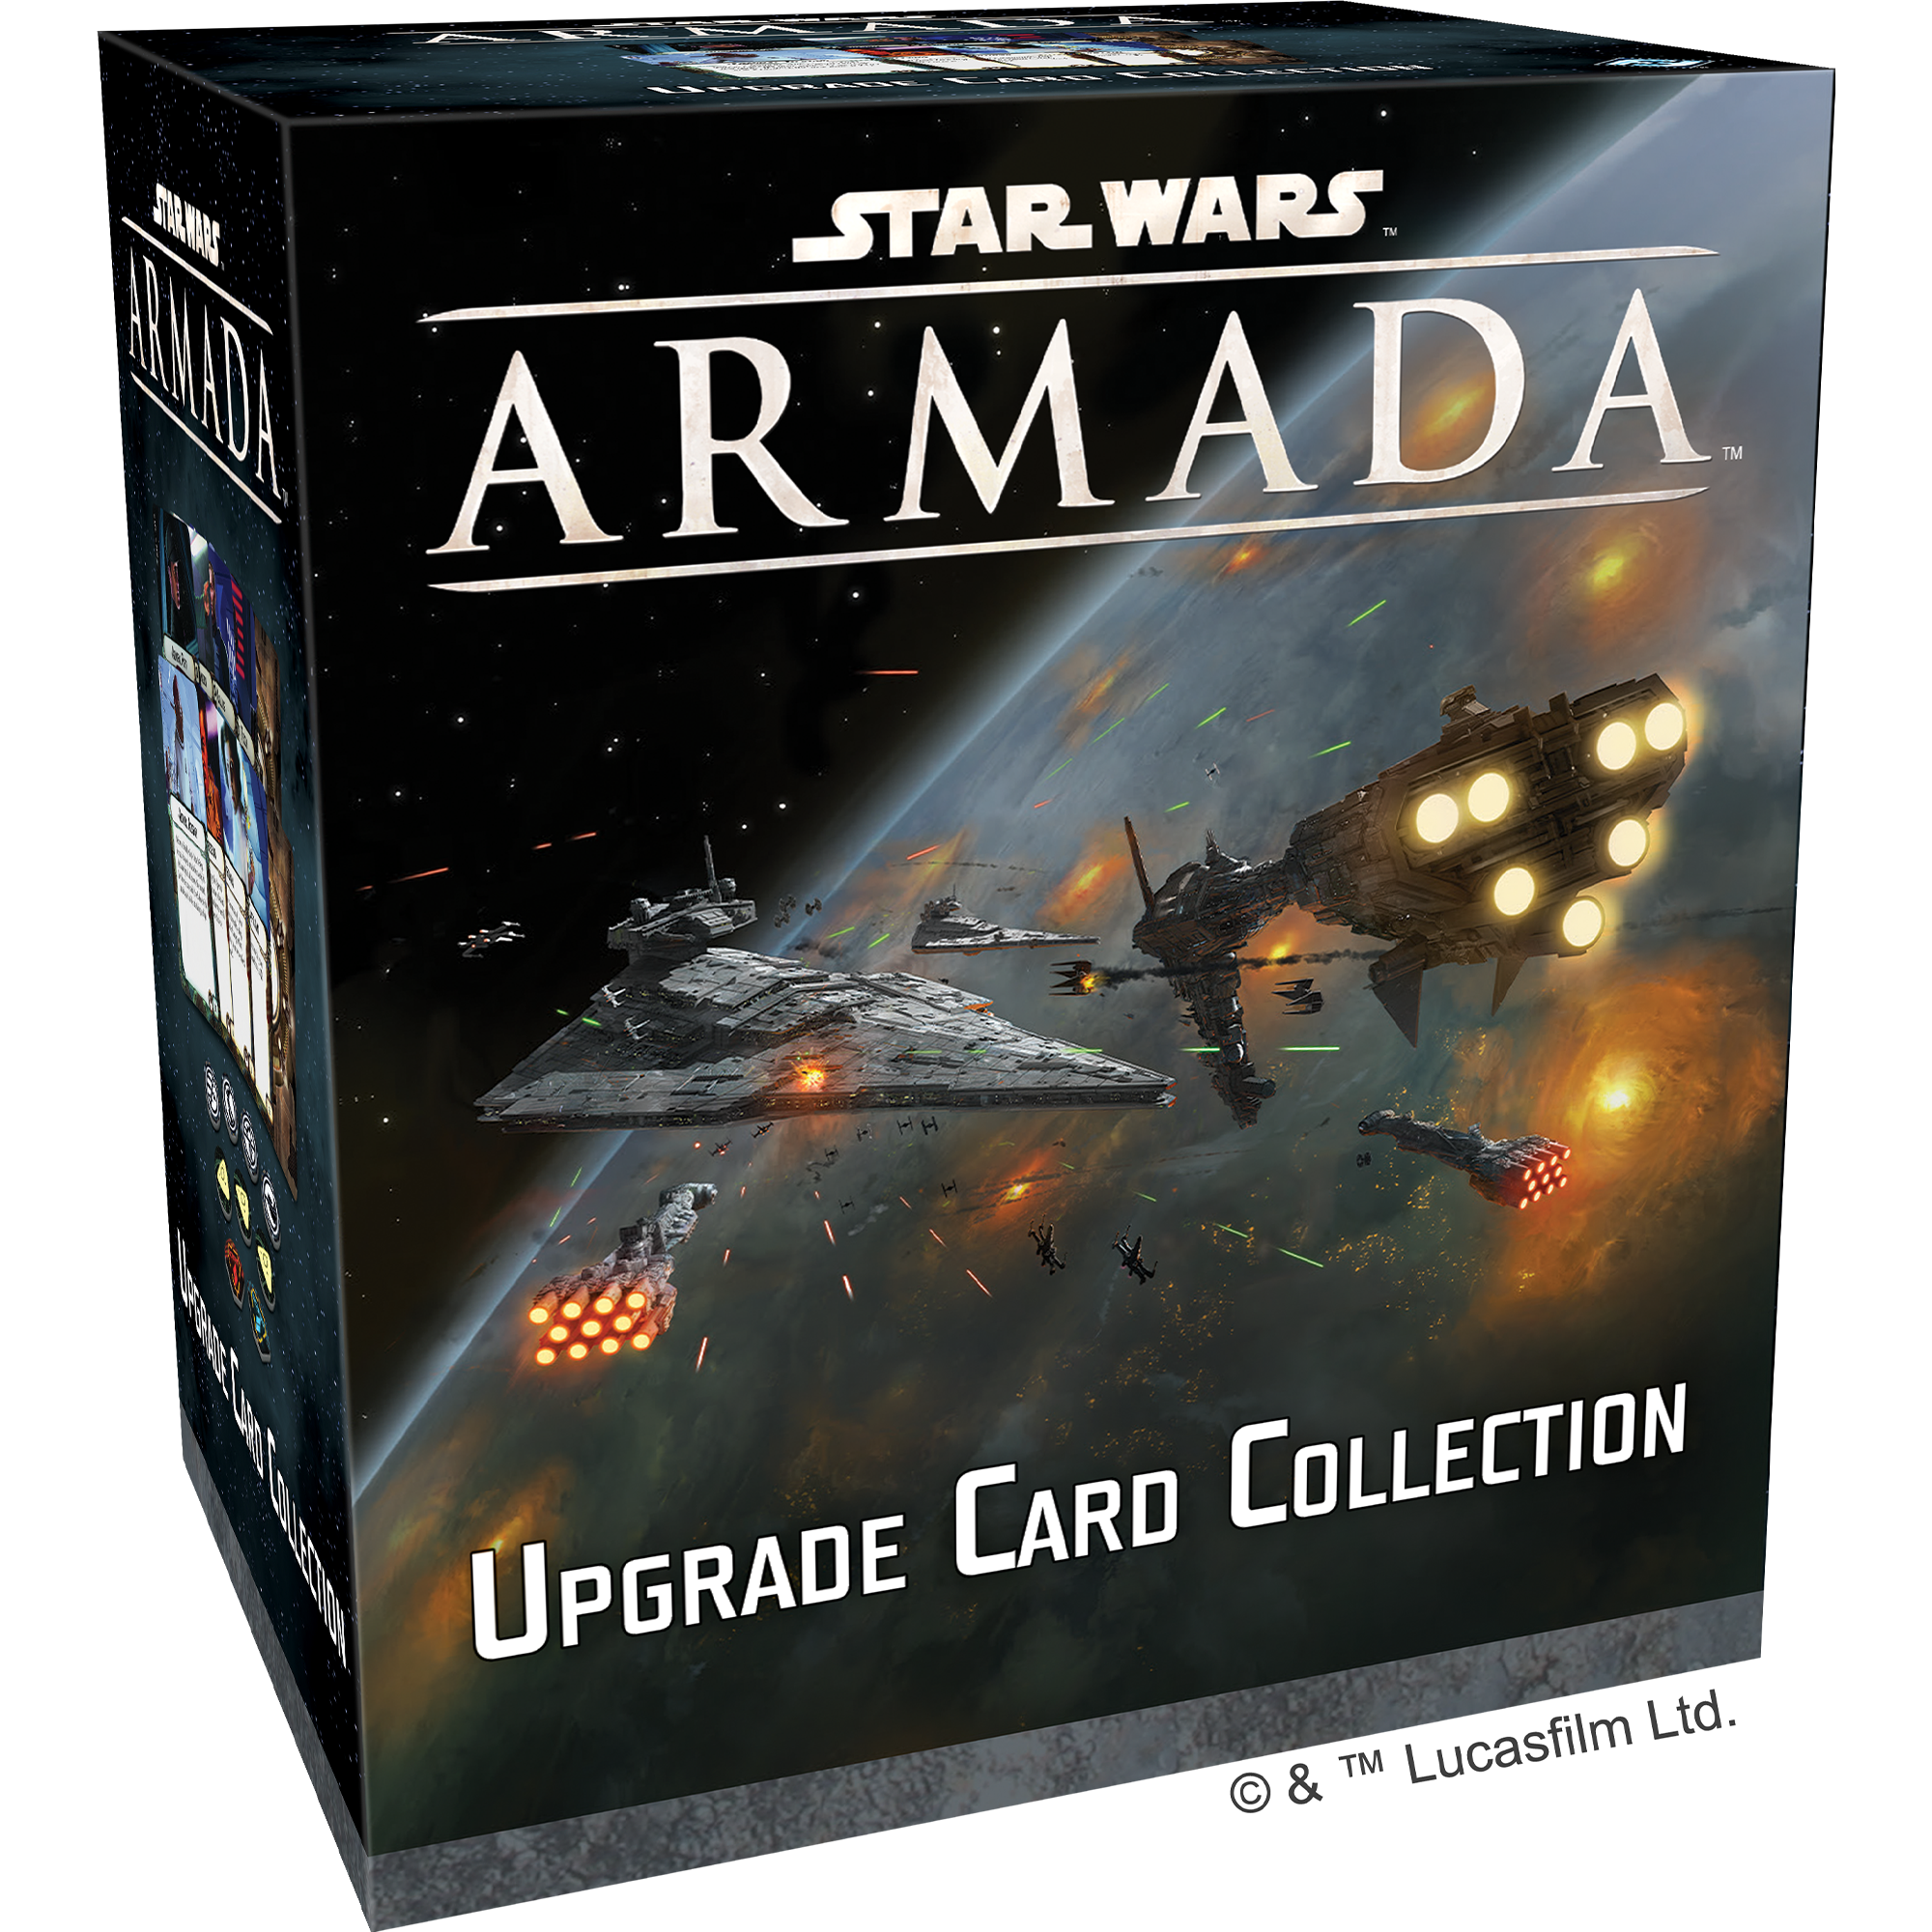 Upgrade Card Collection